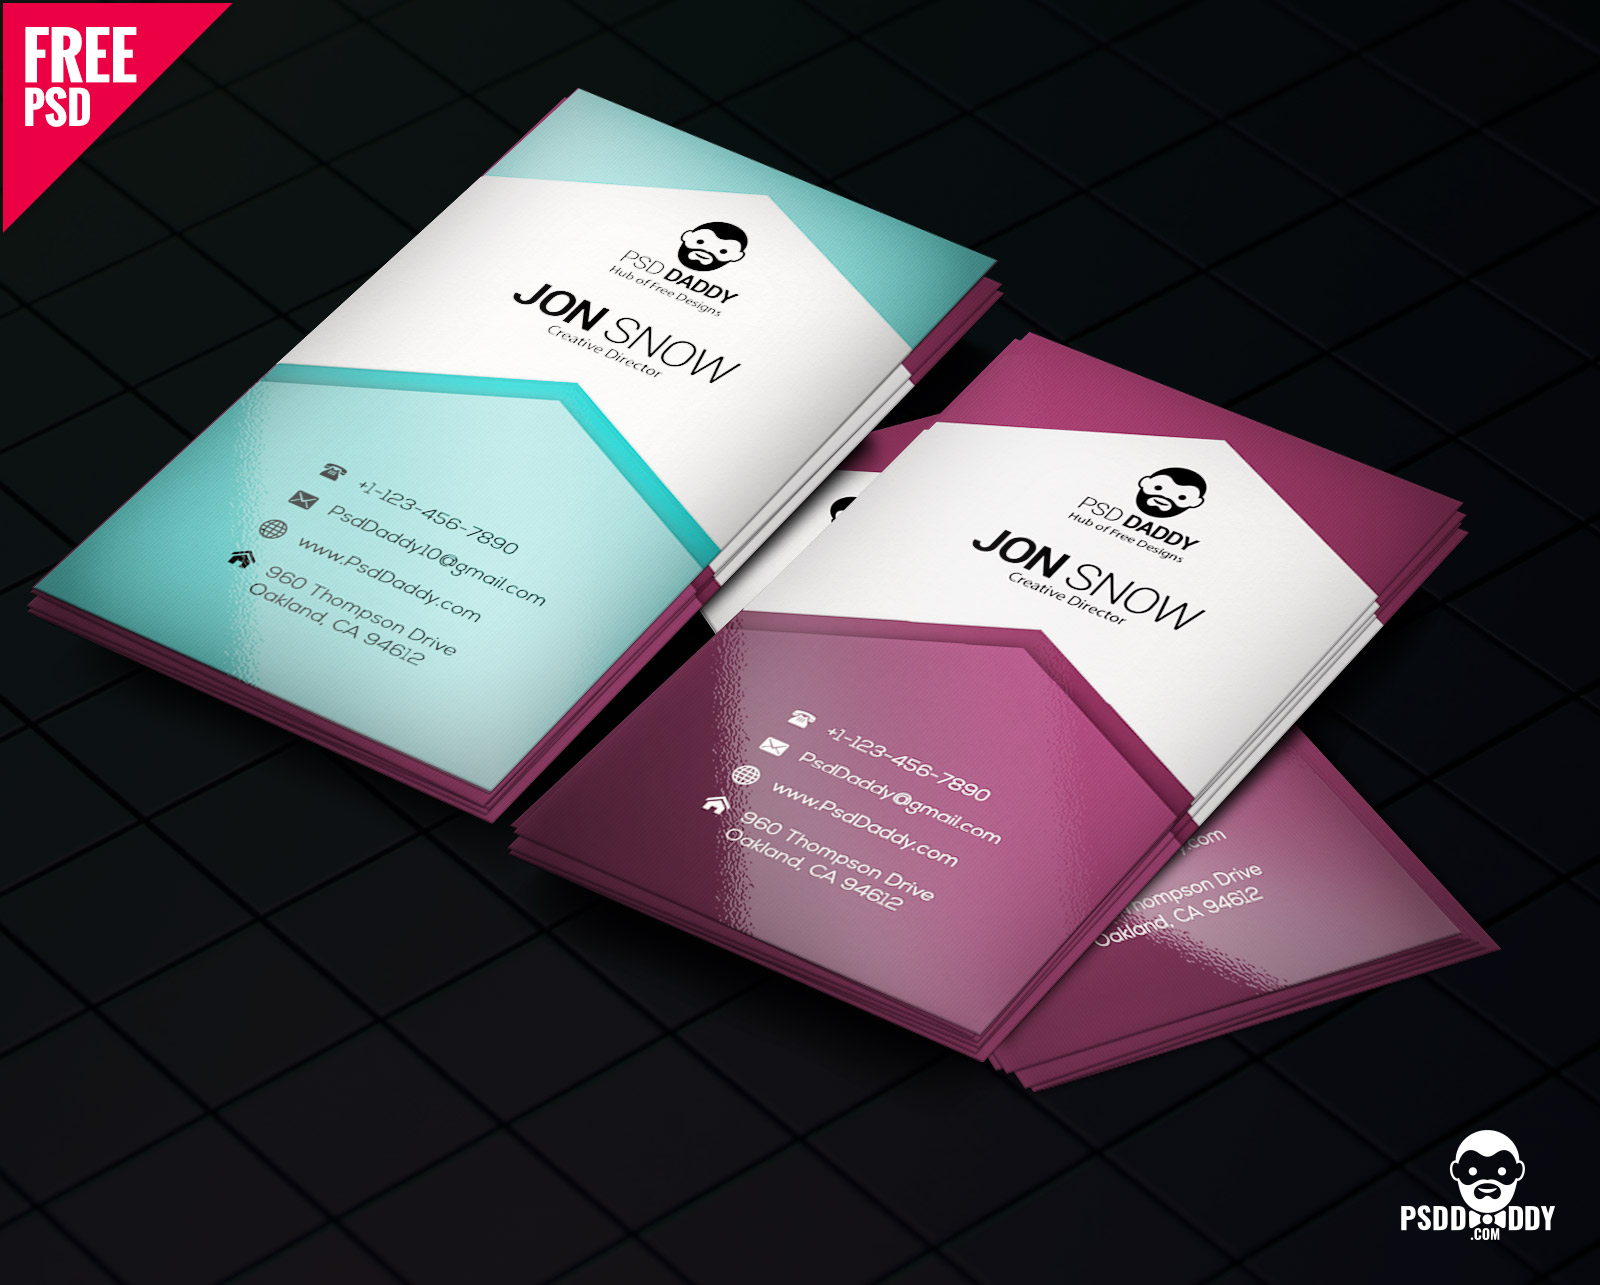 Downloadcreative business card psd free psddaddy business card design business card design templates business card dimensions business card holder flashek Gallery